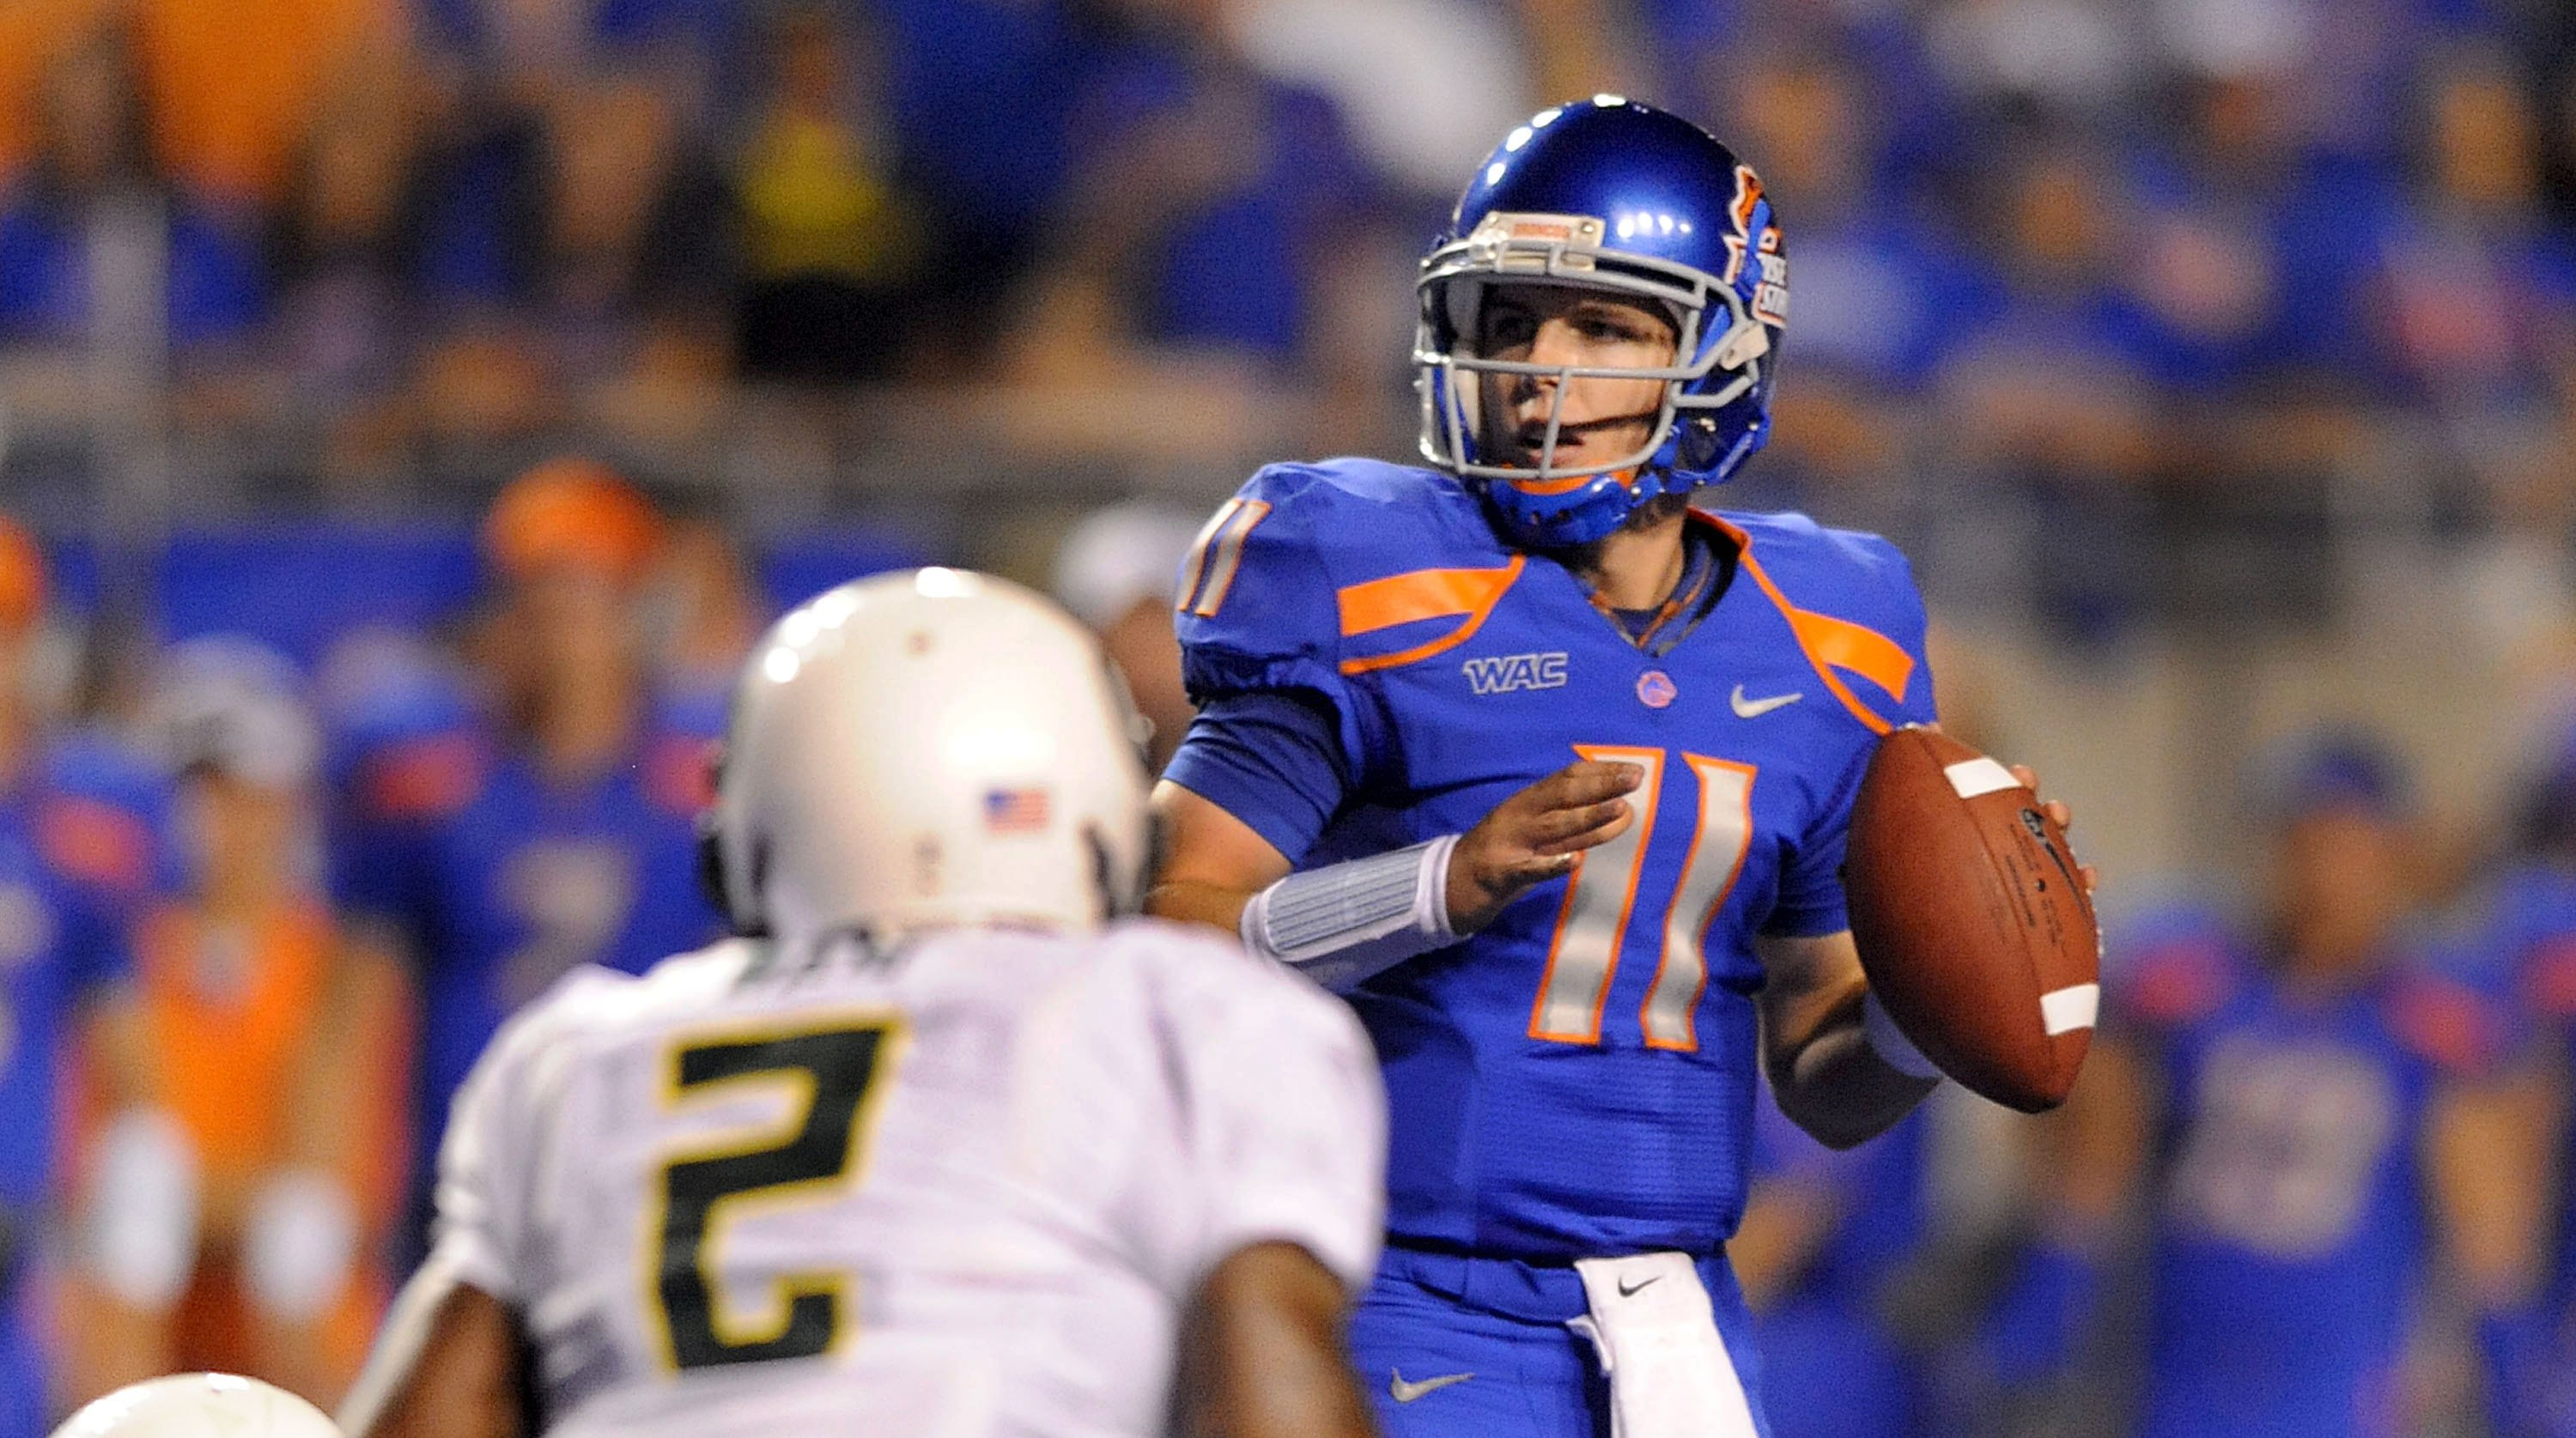 BOISE, ID - SEPTEMBER 3: Quarterback Kellen Moore #6 of the Boise State Broncos looks down field for an open receiver as safety T.J. Ward #2 of the Oregon Ducks applies pressure in the third quarter of the game at Bronco Stadium on September 3, 2009 in Bo